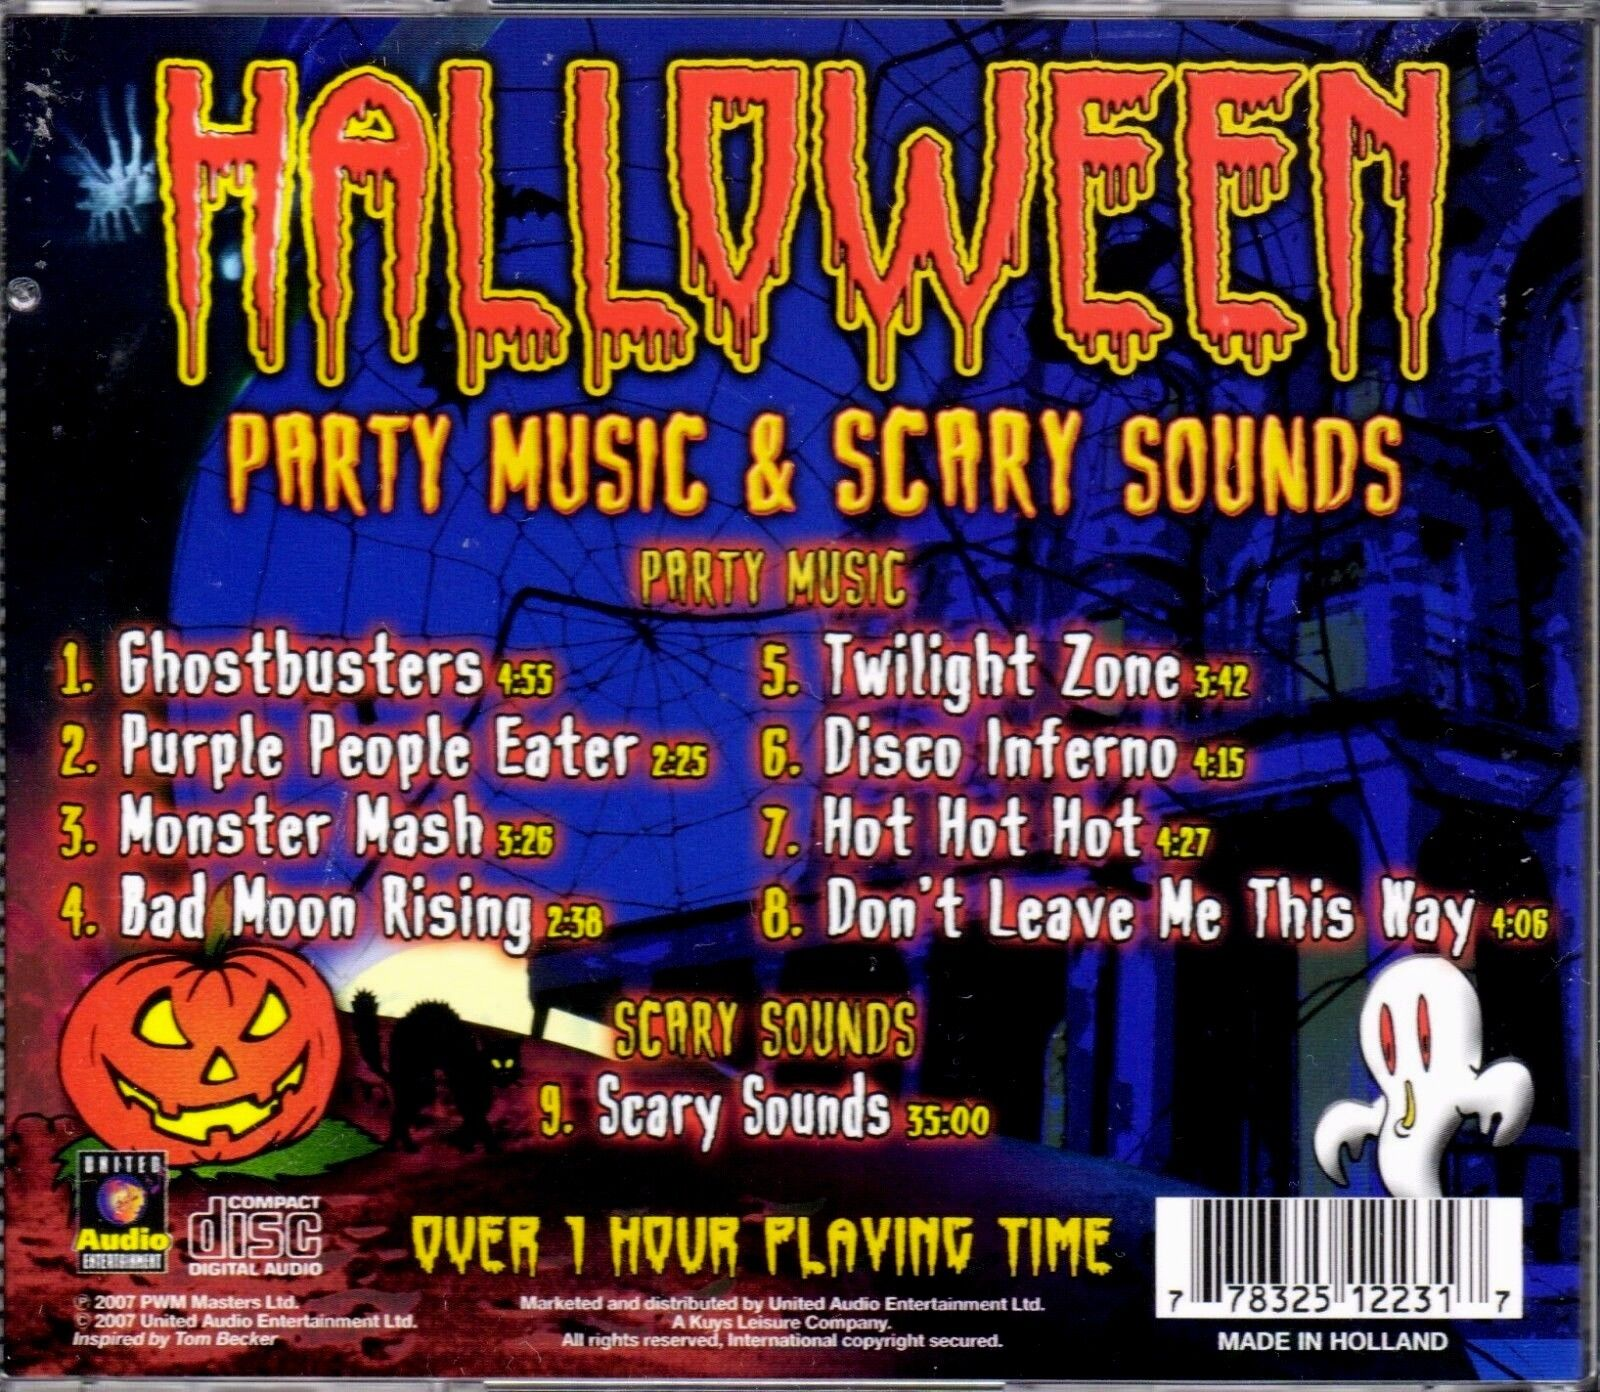 PARTY MUSIC & SCARY SOUNDS: SPOOKY SONGS & SOUND EFFECTS IMPORT CD NEW